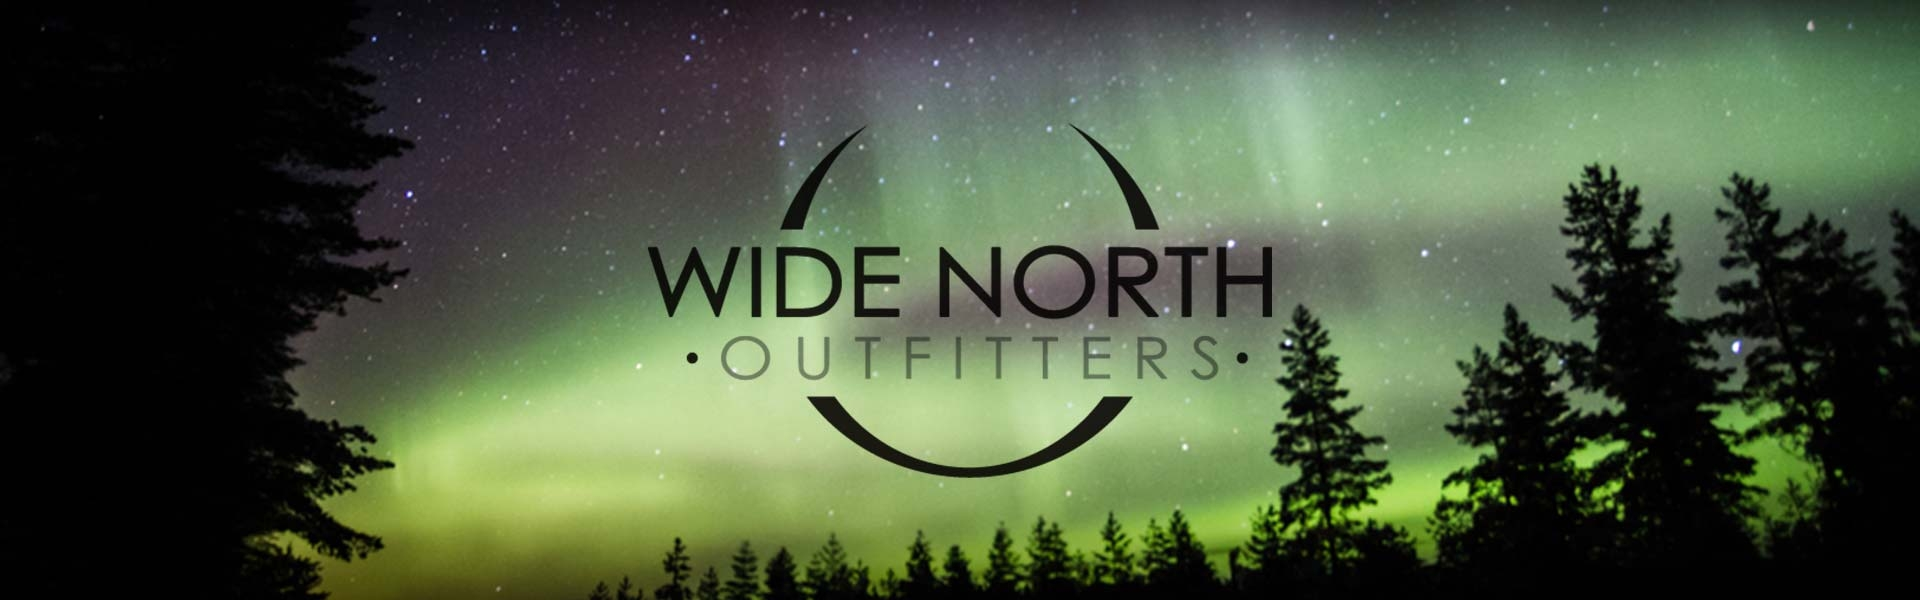 Contact Wide North Outfitters